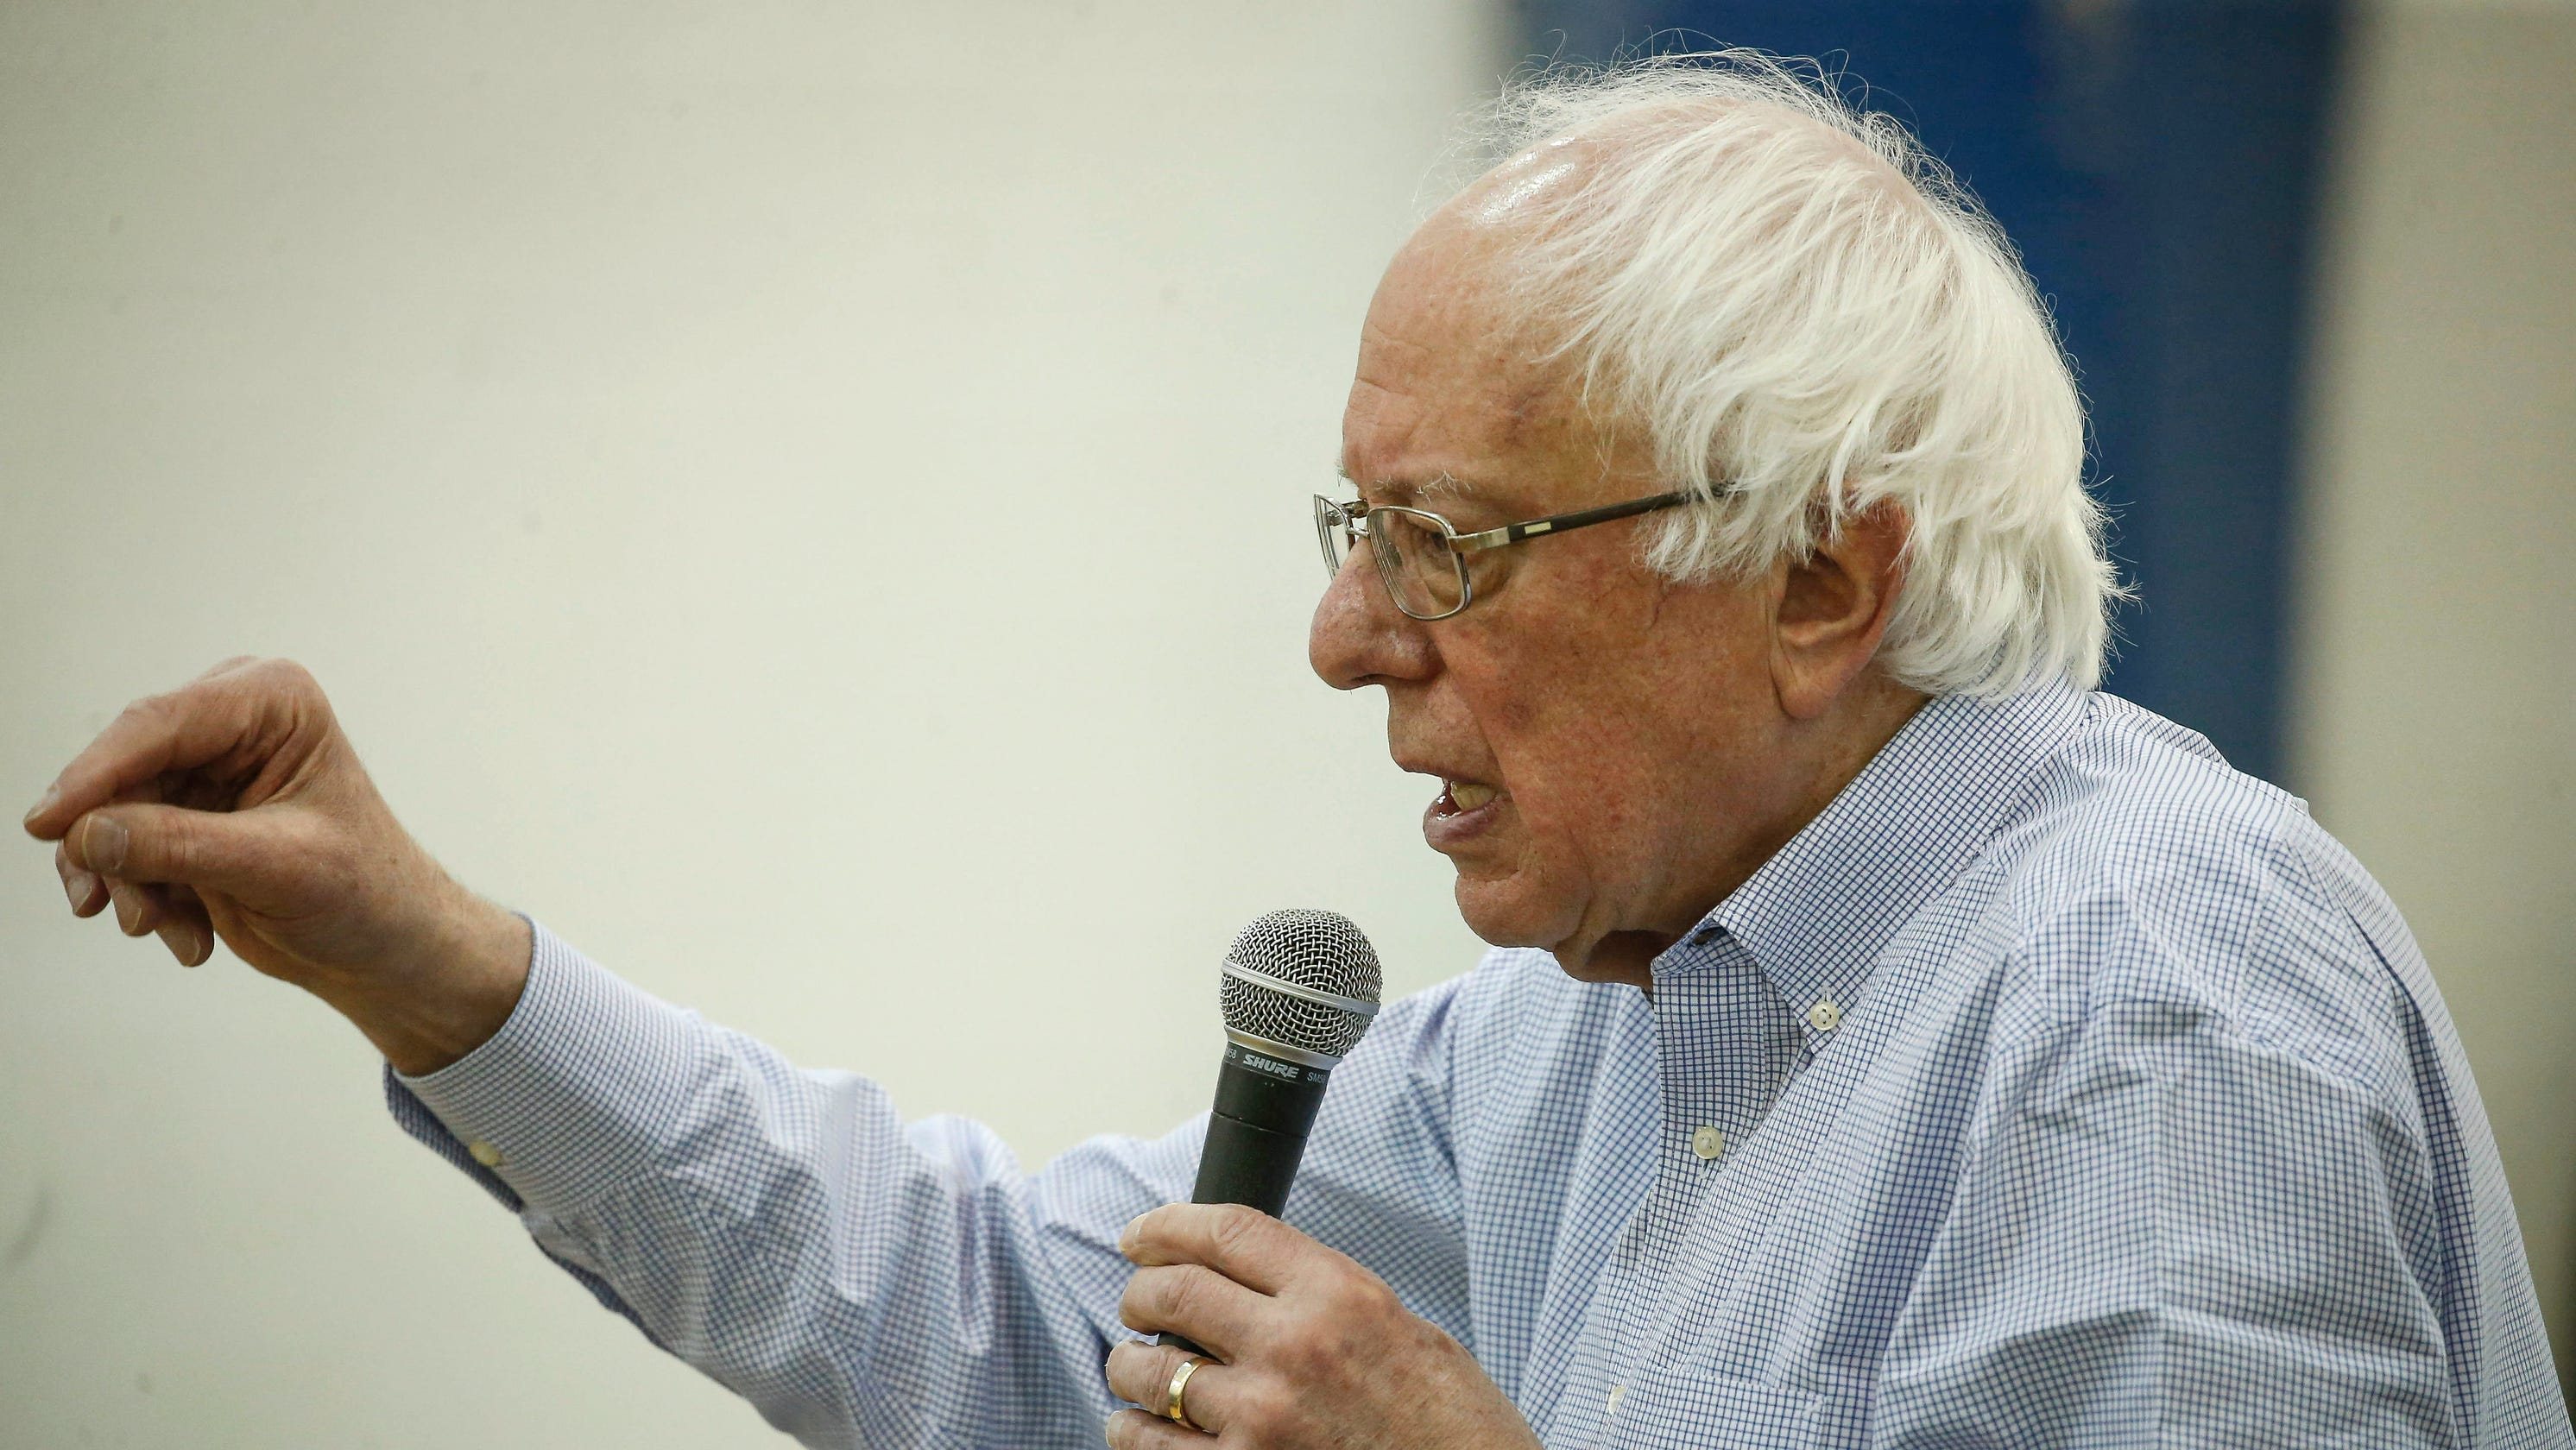 QnA VBage In Iowa, Bernie Sanders says states should allow felons to vote from behind bars